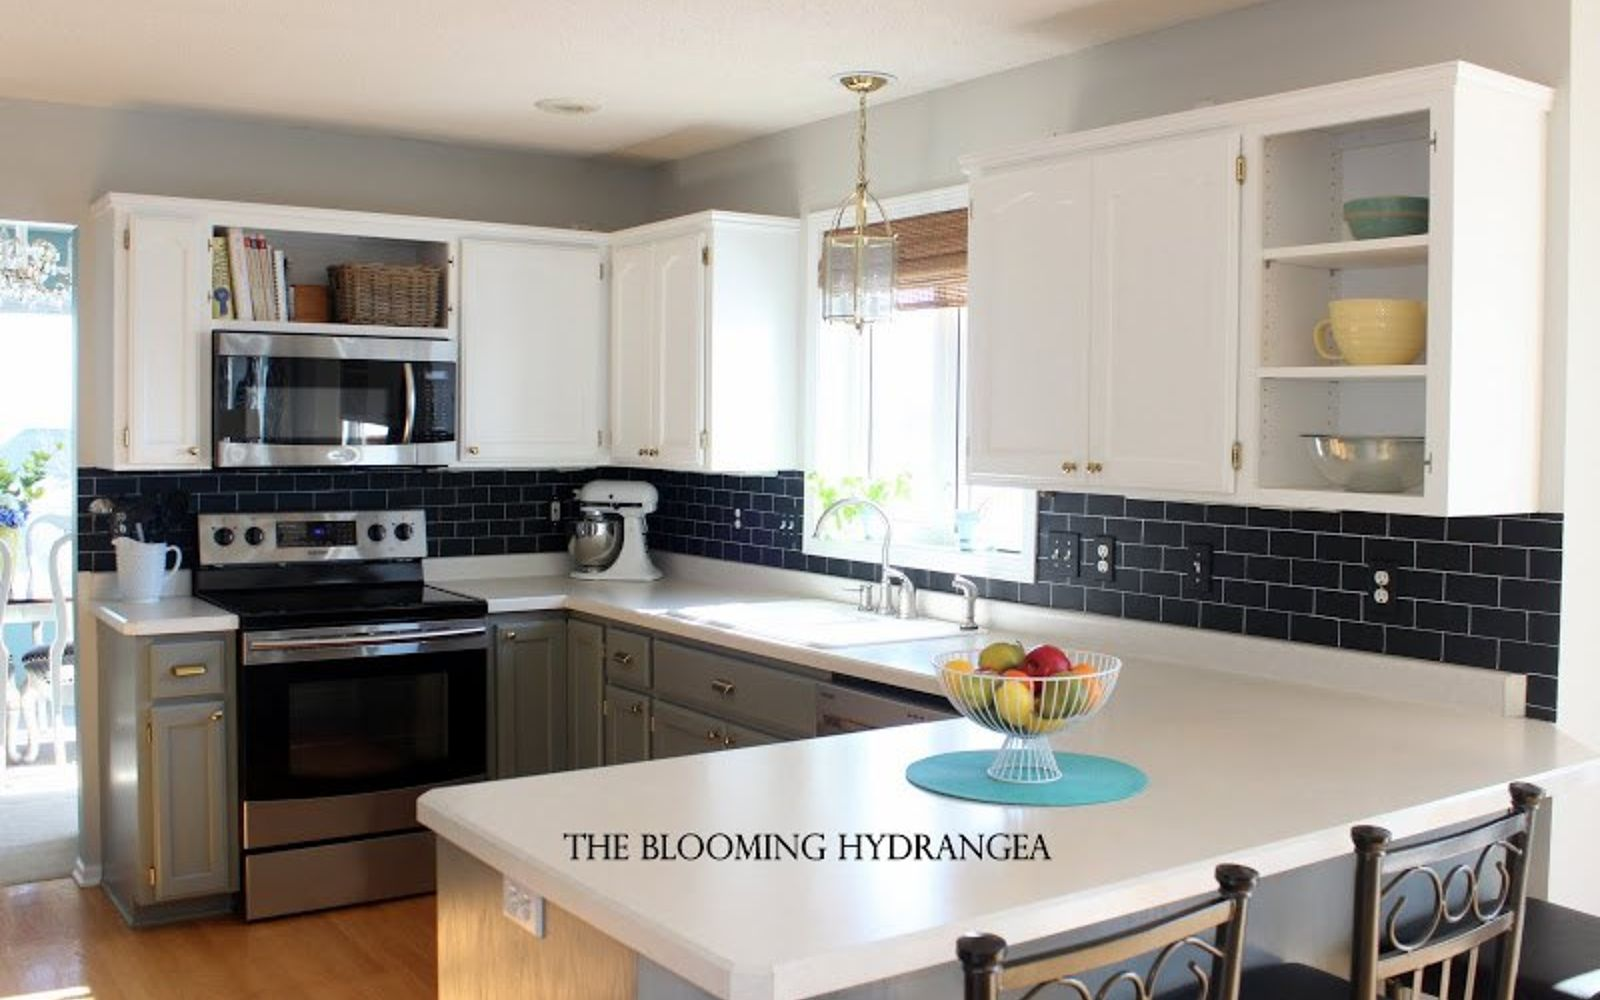 13 incredible kitchen backsplash ideas that aren't tile | hometalk